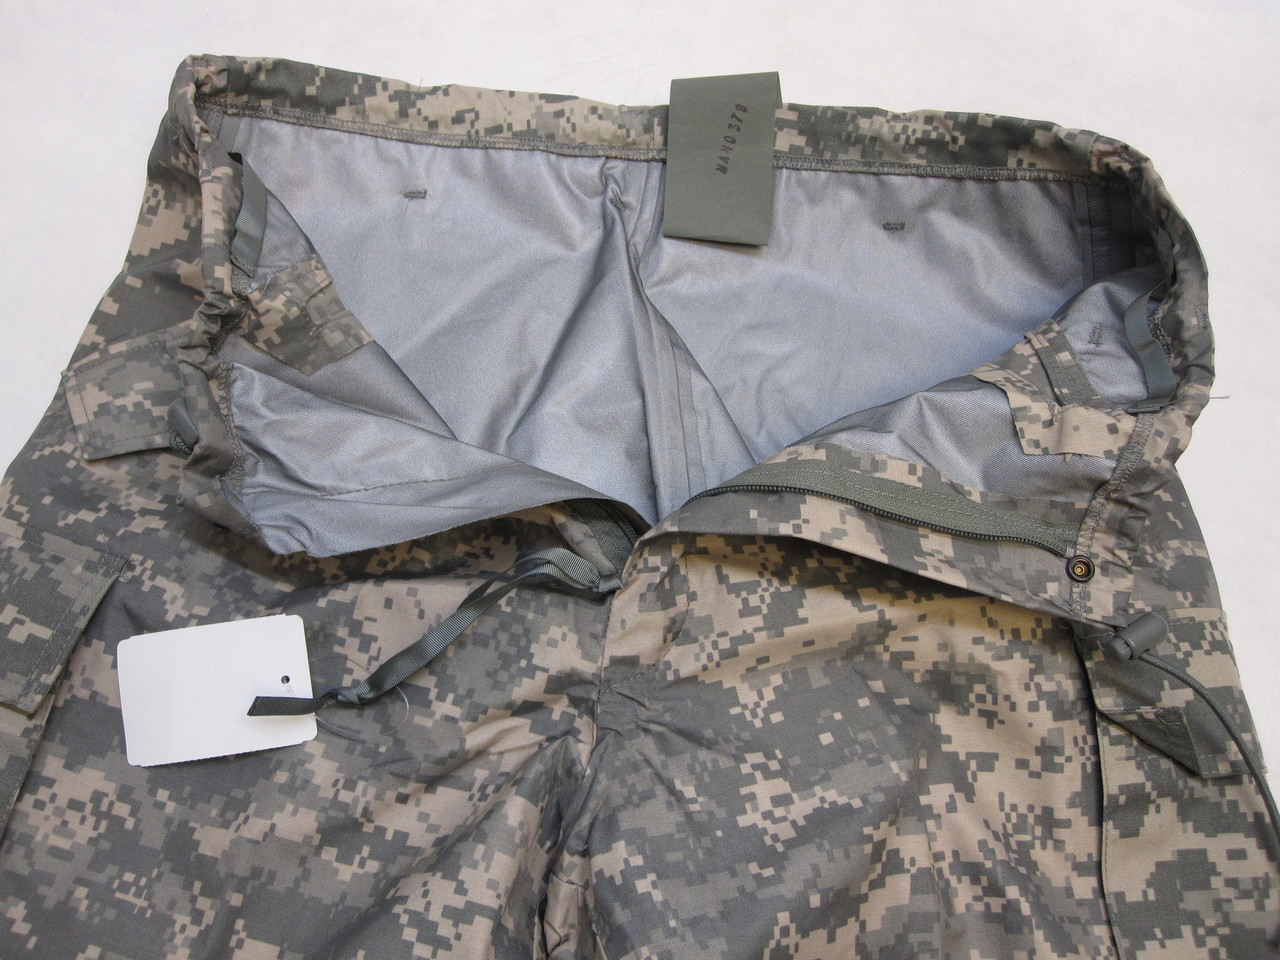 ARMY ISSUE ACU DIGITAL GORE-TEX COLD/WET WEATHER TROUSER MEDIUM/REGULAR PANTS B0